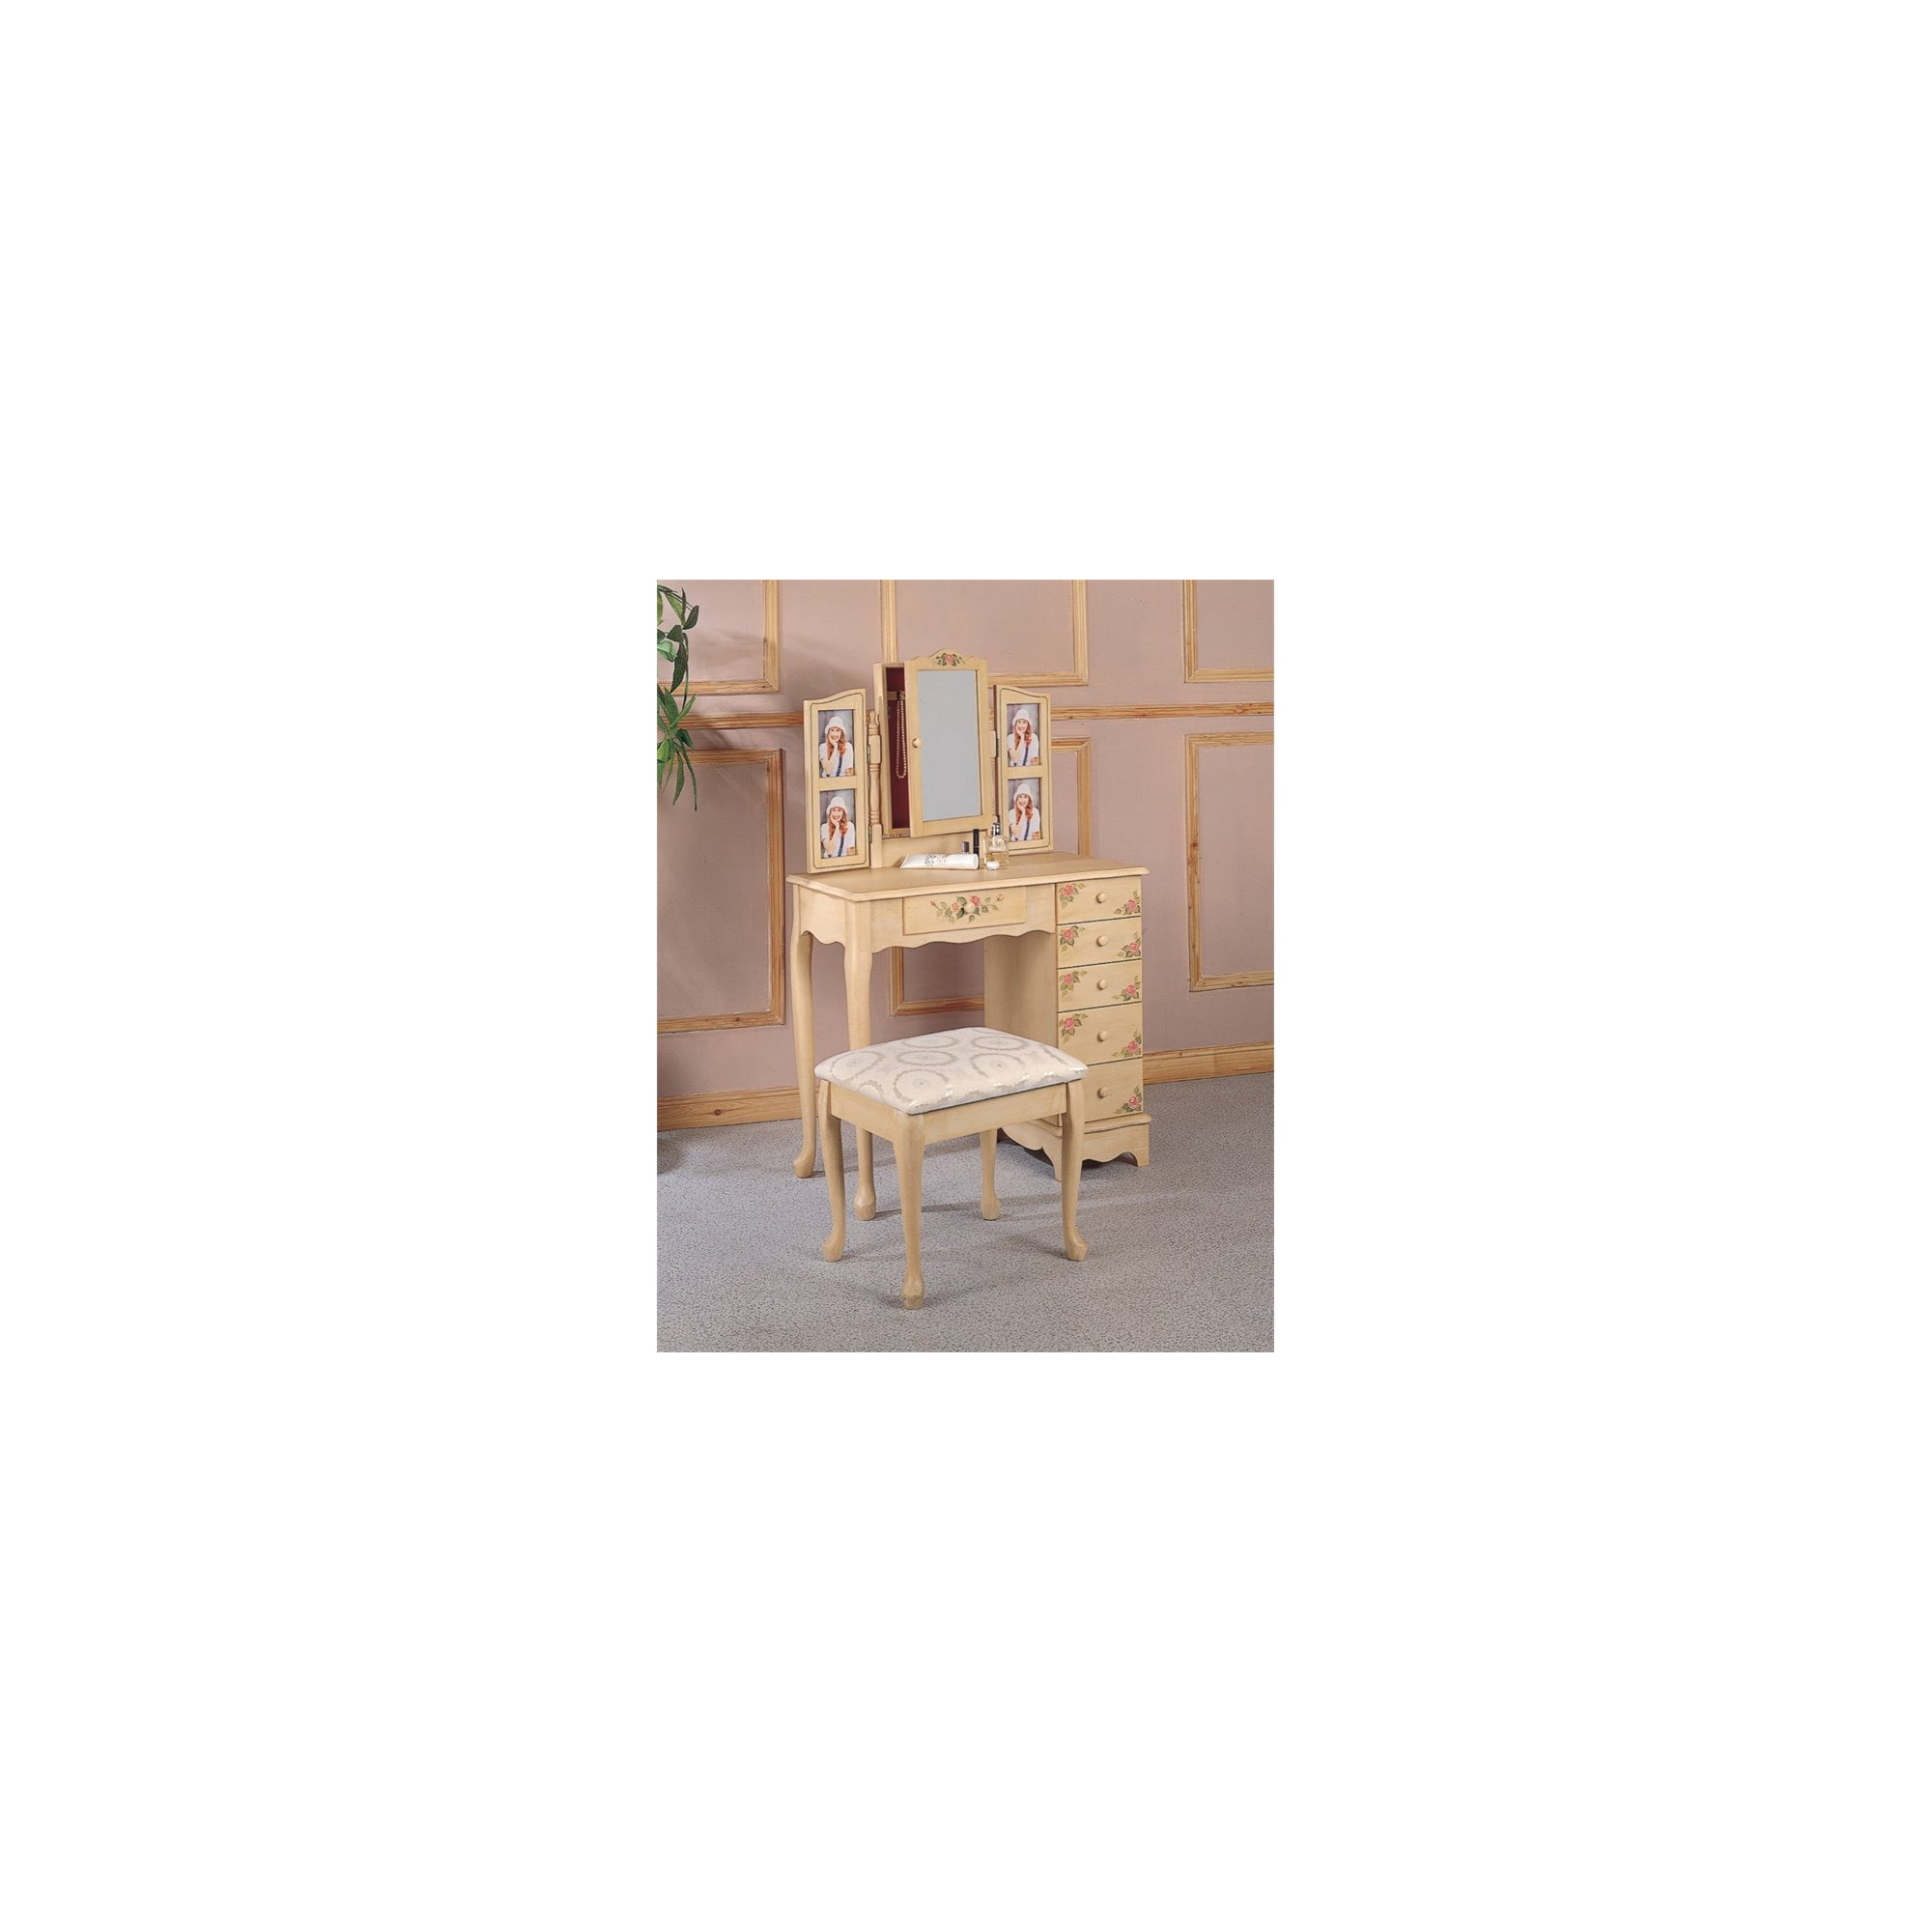 Awesome Coaster Hand Painted Wood Makeup Vanity Table Set With Mirror In Ivory Download Free Architecture Designs Jebrpmadebymaigaardcom